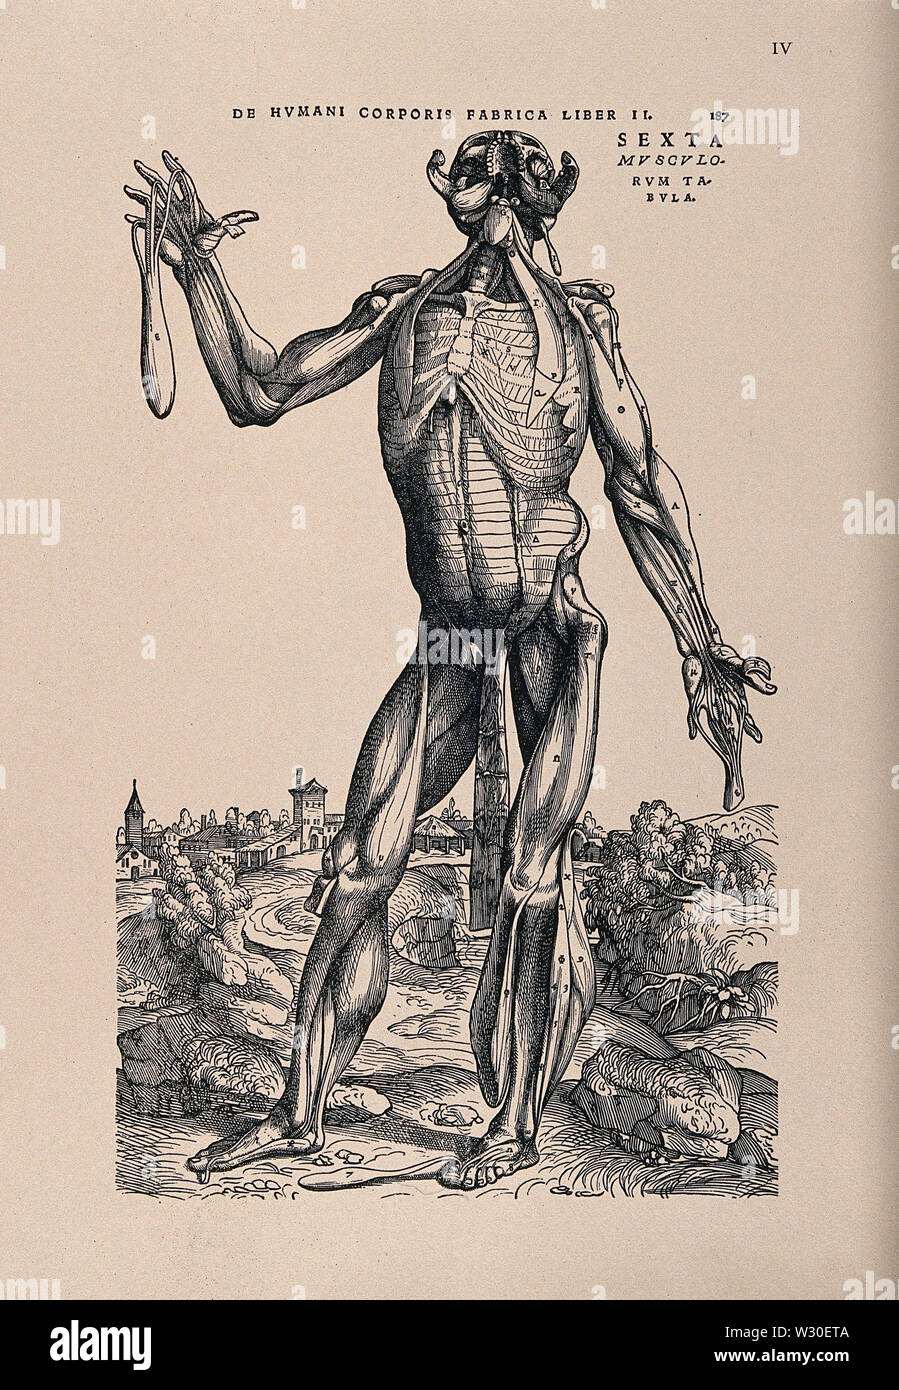 Muscleman, in a landscape, seen from the front. Photolithograph, 1940, after a woodcut, 1543. r - Stock Image